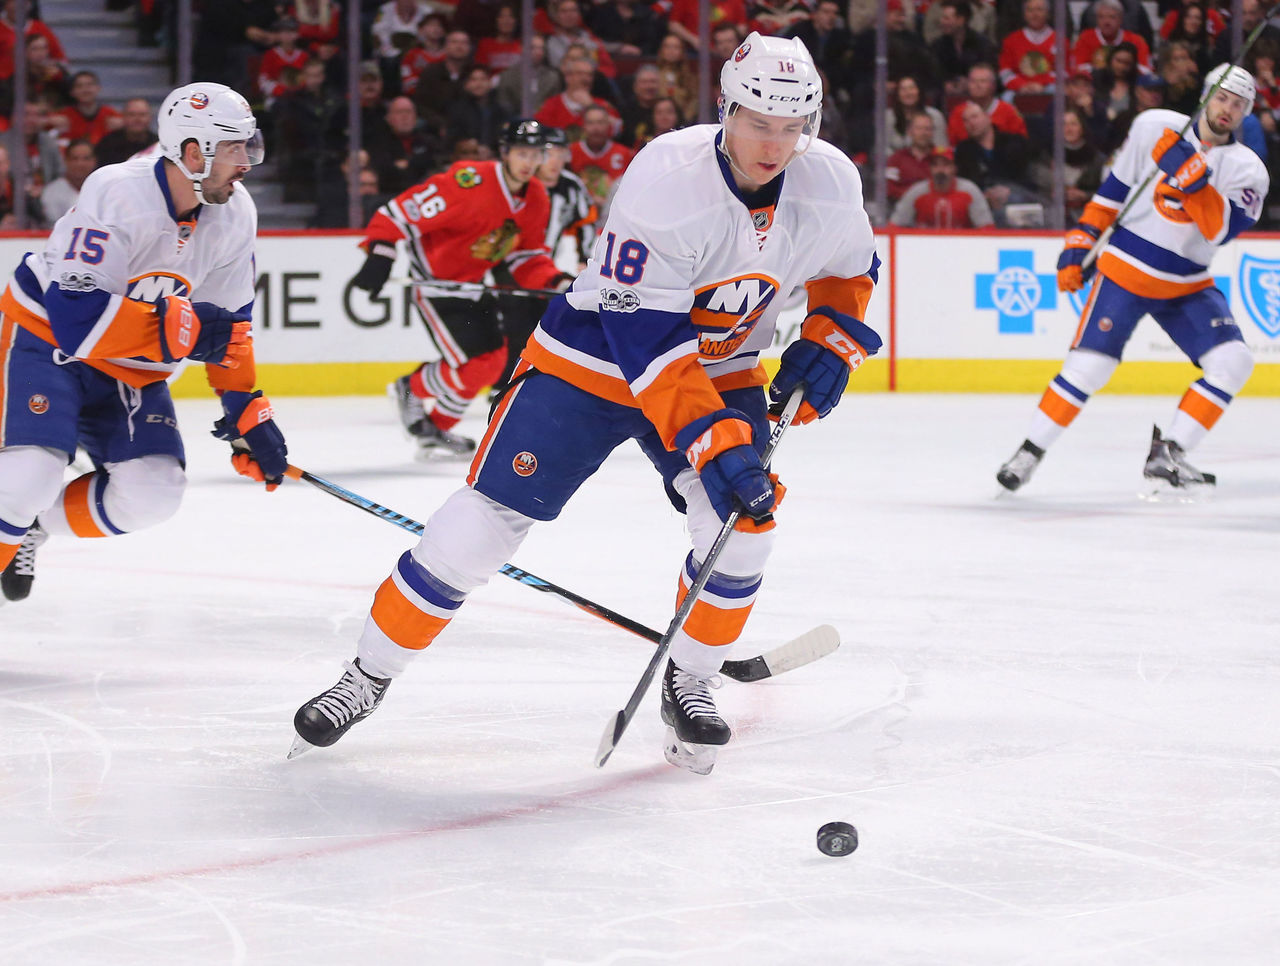 Cropped 2017 03 04t023152z 850453617 nocid rtrmadp 3 nhl new york islanders at chicago blackhawks